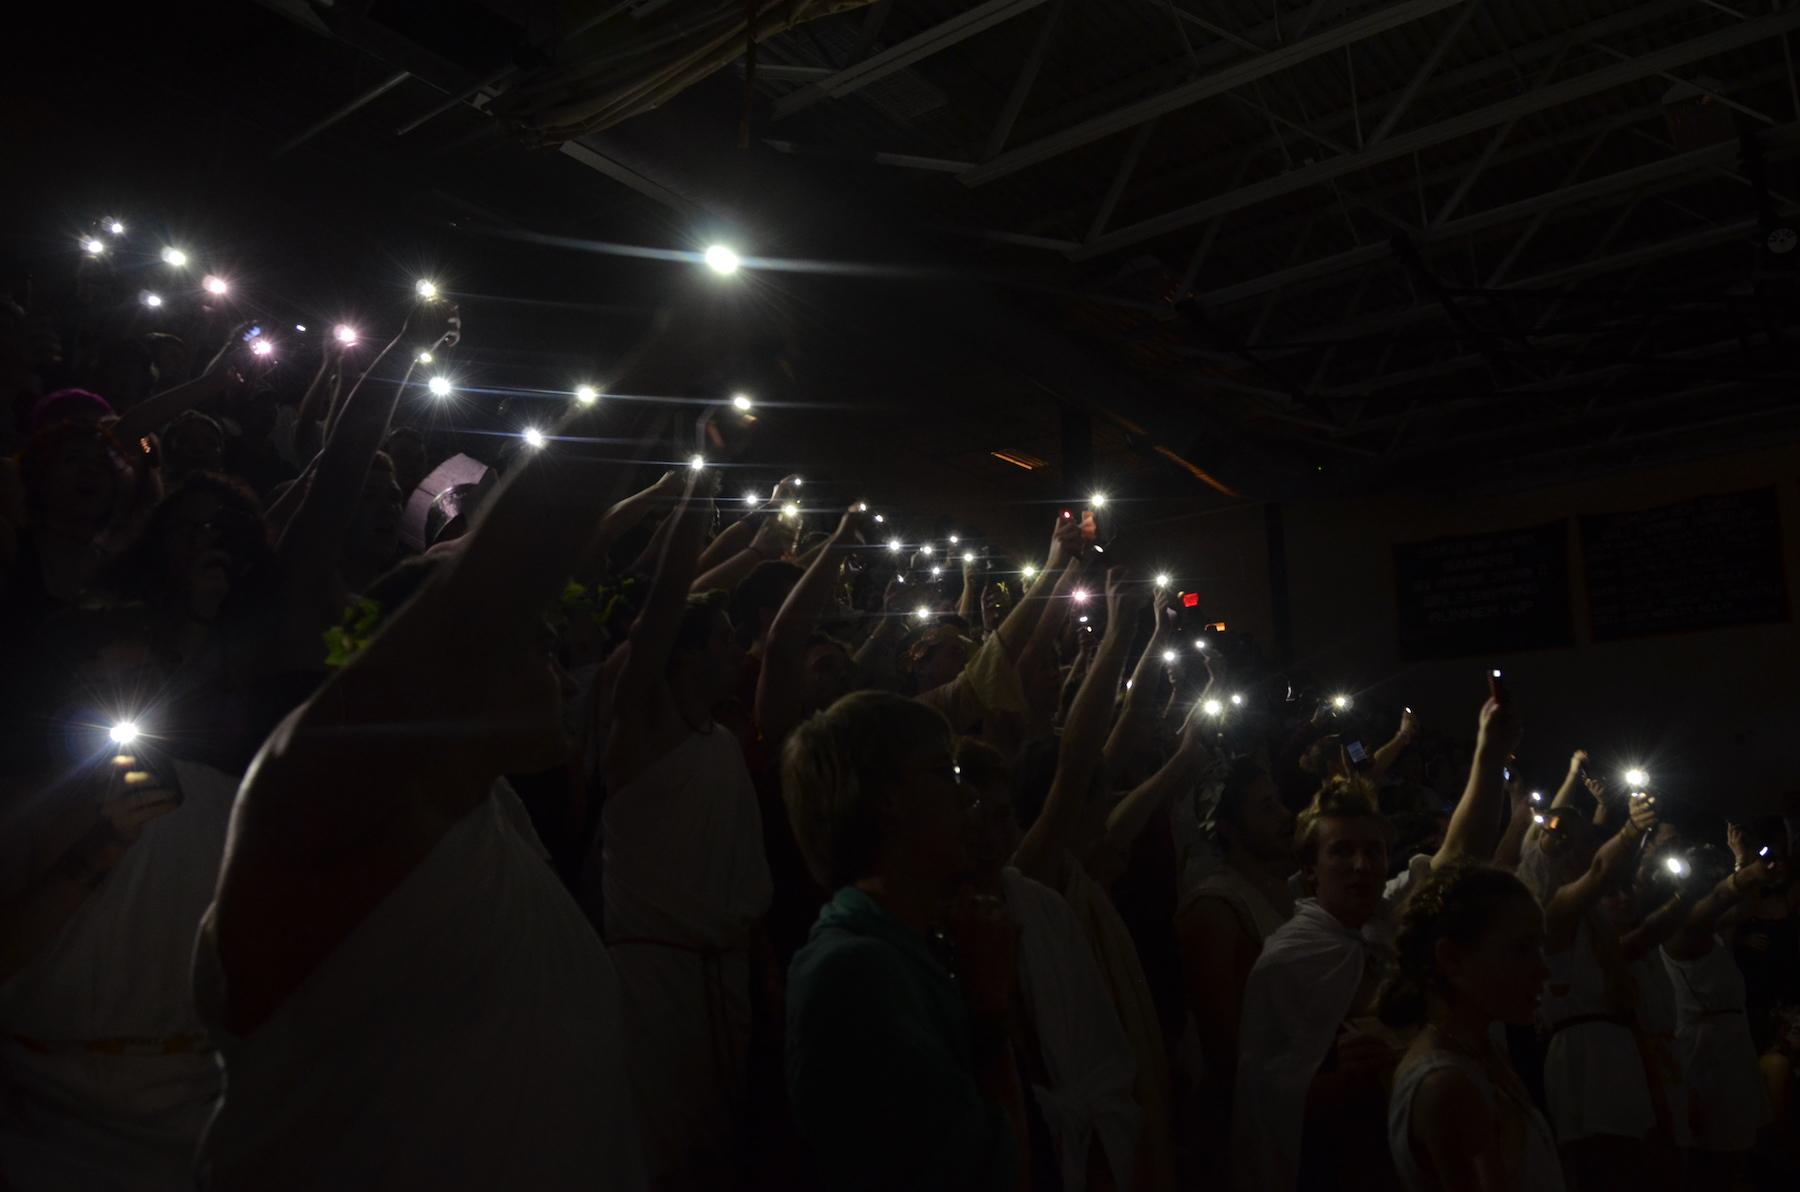 Seniors+turn+off+the+lights+and+turn+on+their+flashlights+during+their+dance.